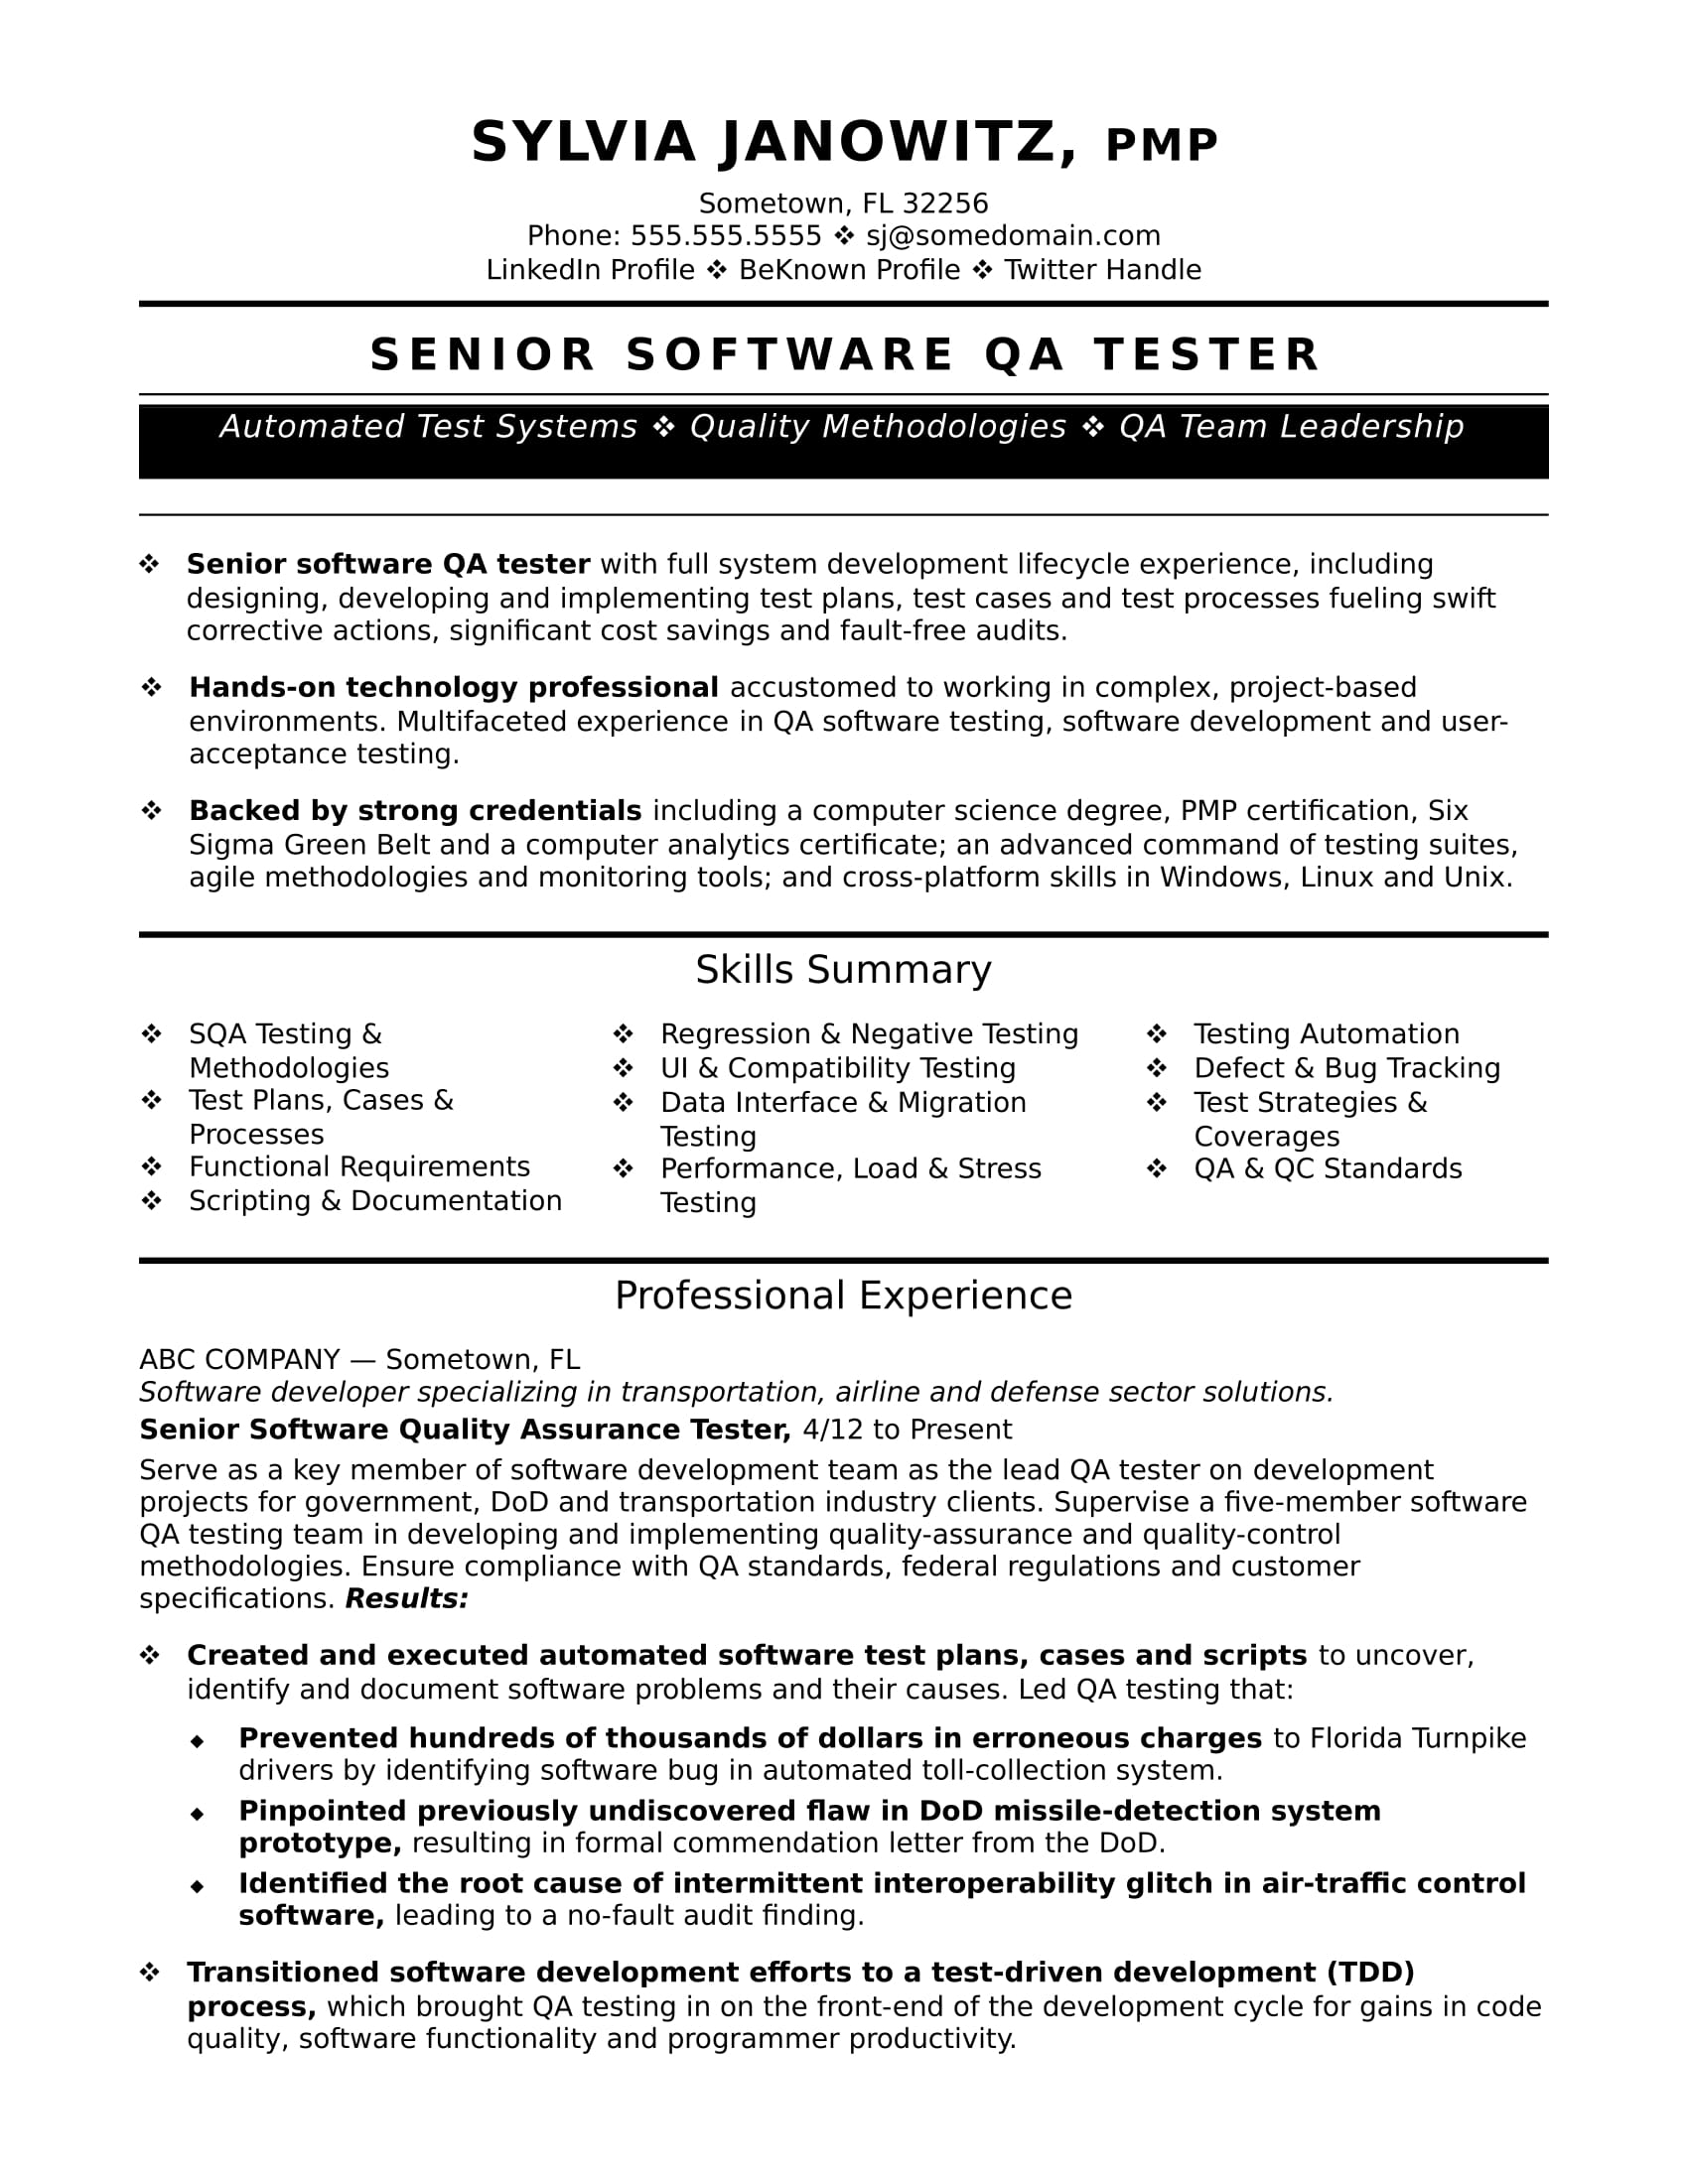 Software Testing Resume Format For Experienced Experienced Qa Software Tester Resume Sample Monster